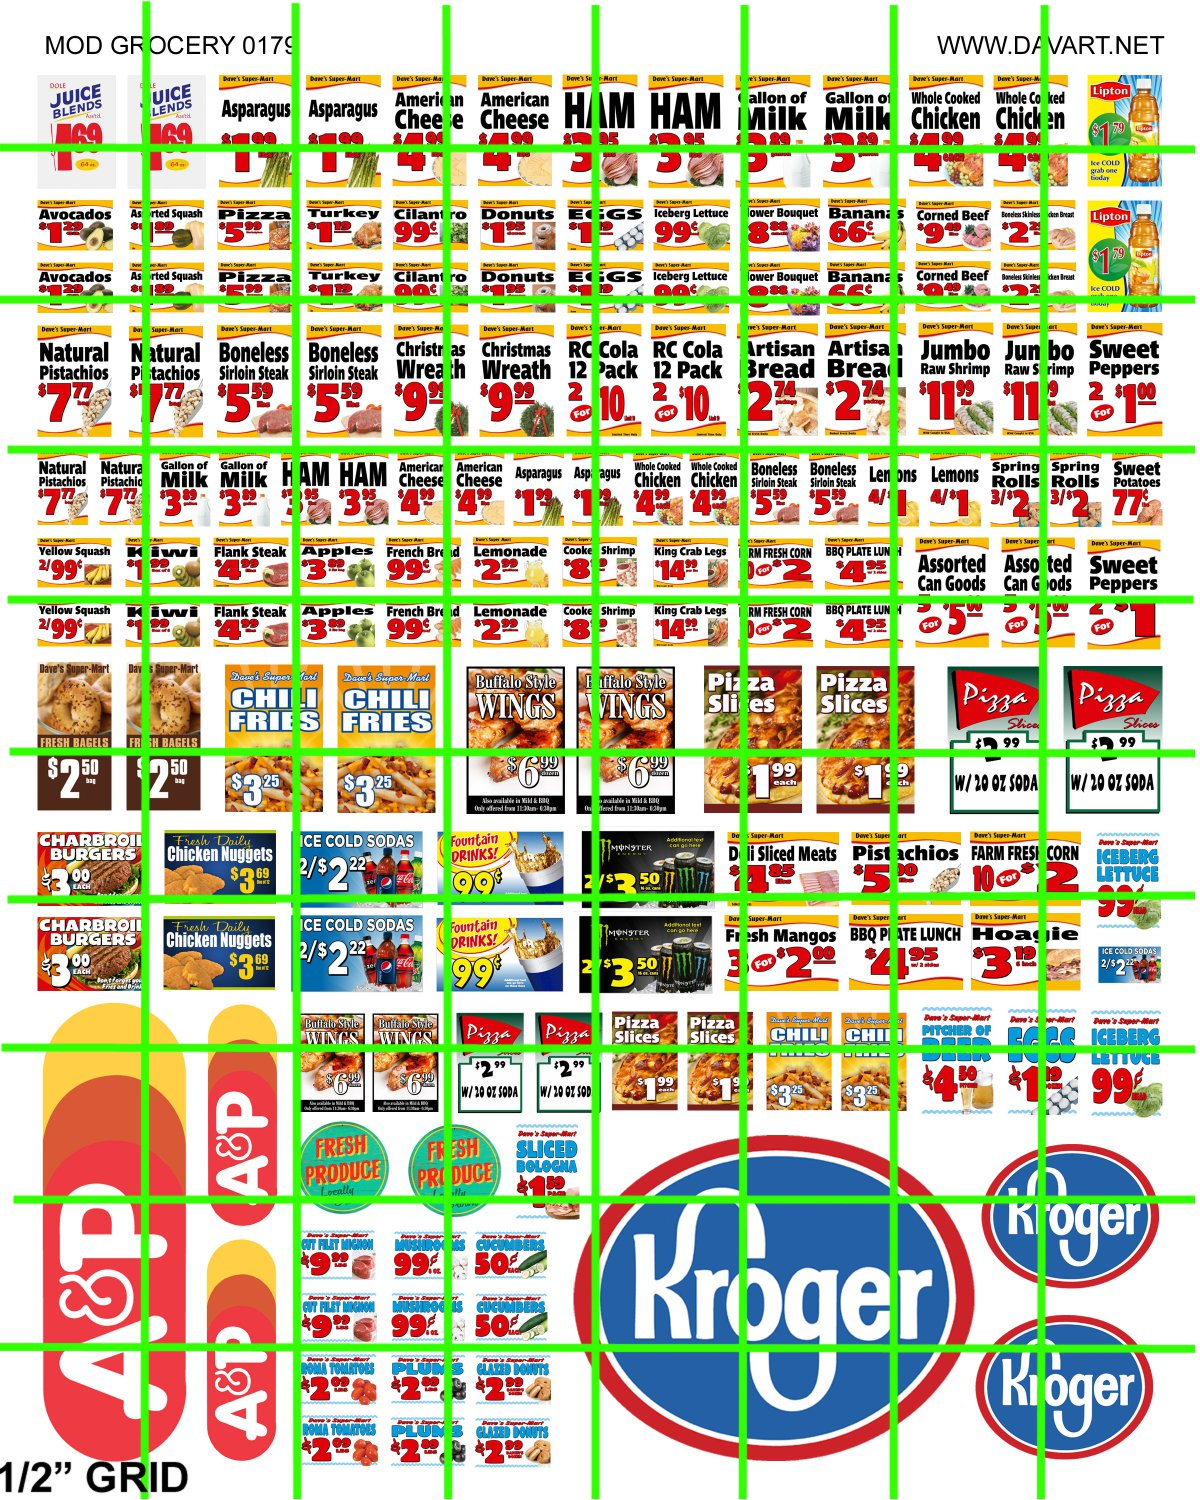 7019 - MODERN GROCERY STORE PRICE SIGNAGE